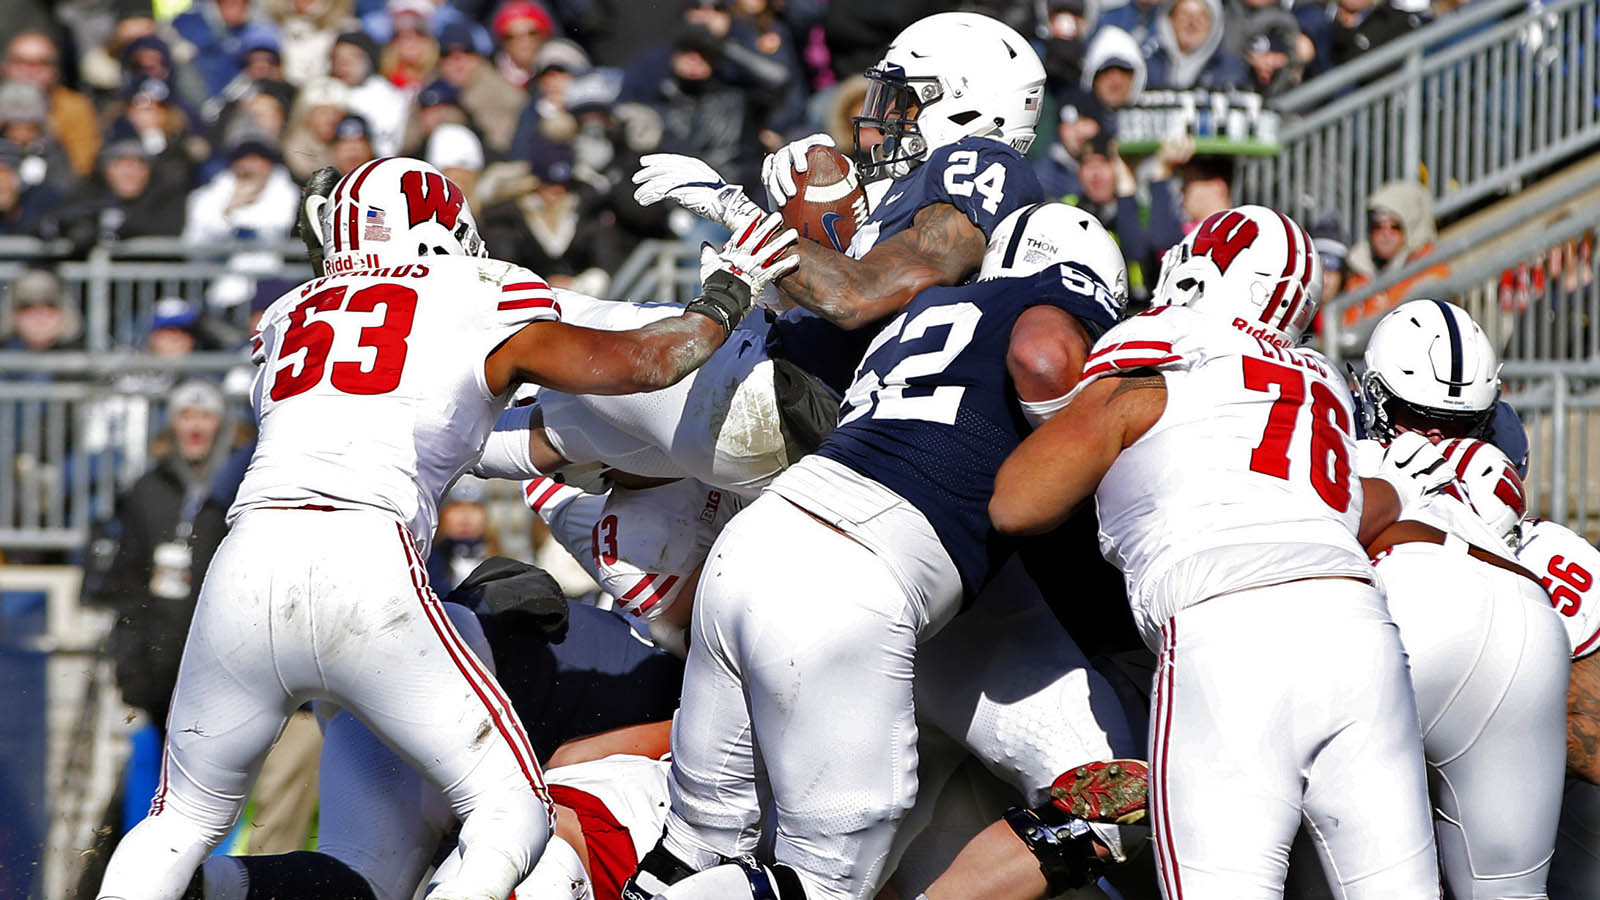 Penn State's Miles Sanders (24) dives over the line to score against Wisconsin during the first half of an NCAA college football game in State College, Pa., Saturday, Nov. 10, 2018. (AP Photo/Chris Knight)